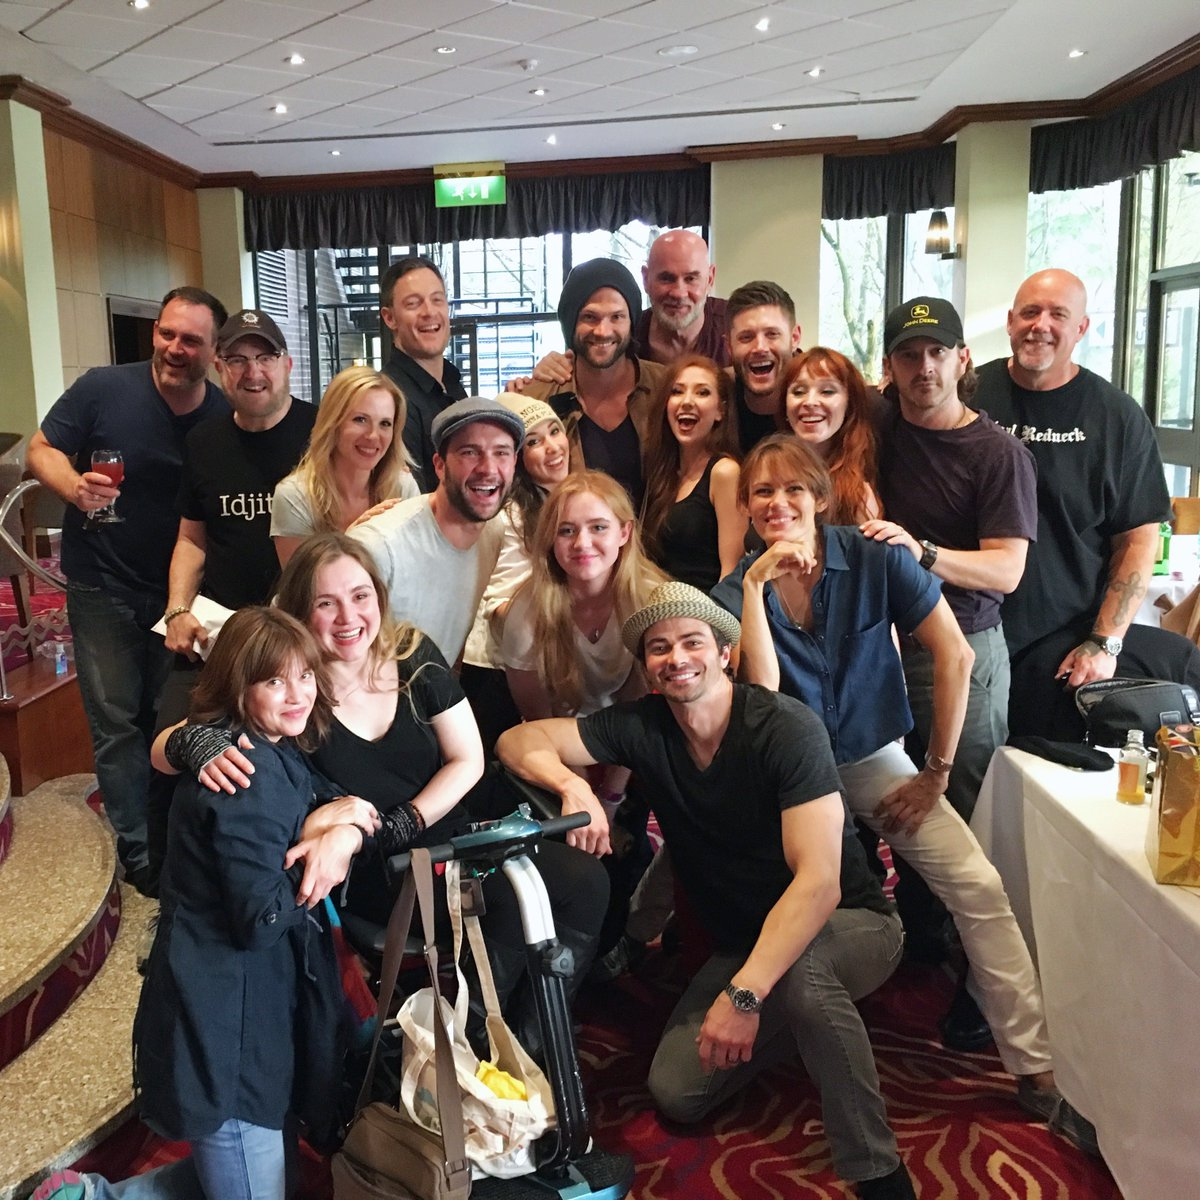 Amazing time at #Asylum16!  Such a talented and loving cast. Hope to see y'all again soon. ♥  @CW_SPN https://t.co/YJbedBPgFM